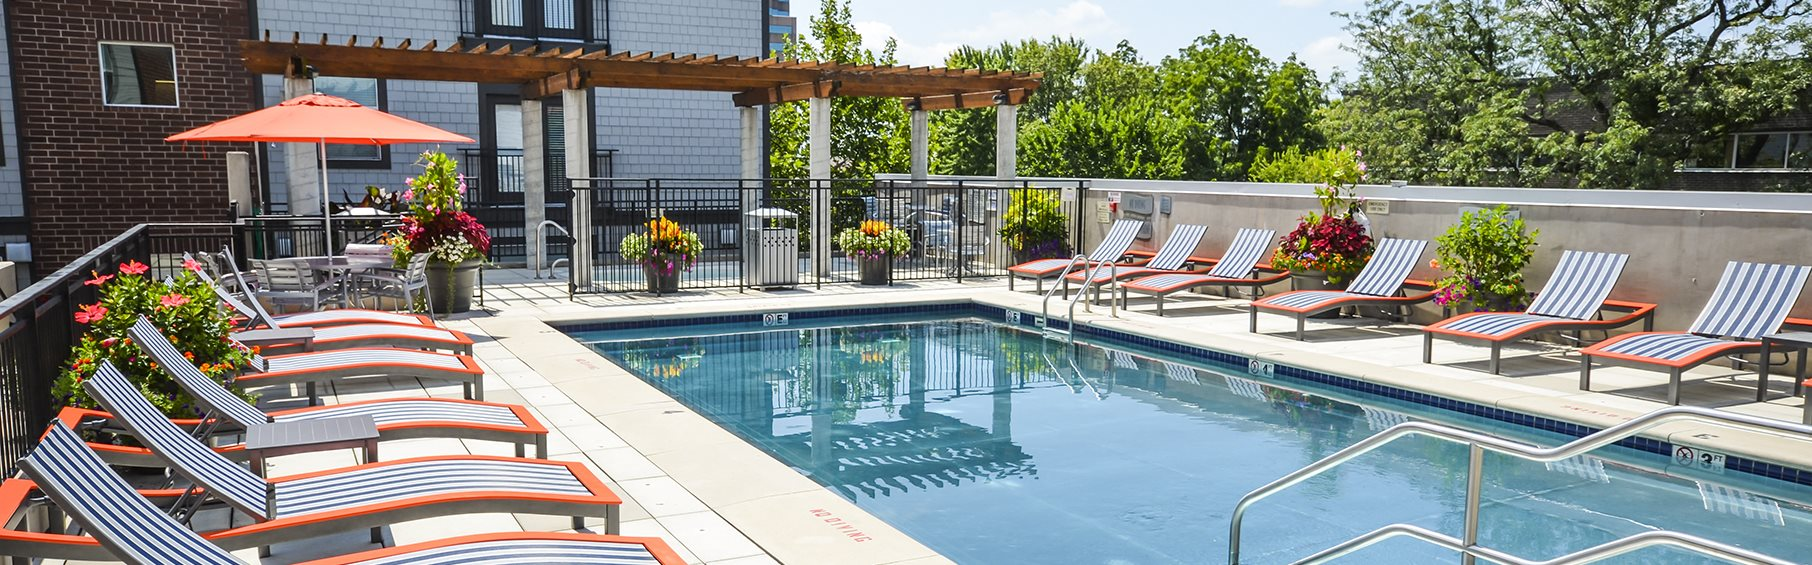 Outdoor pool at 45 Madison Apartments in Kansas City MO